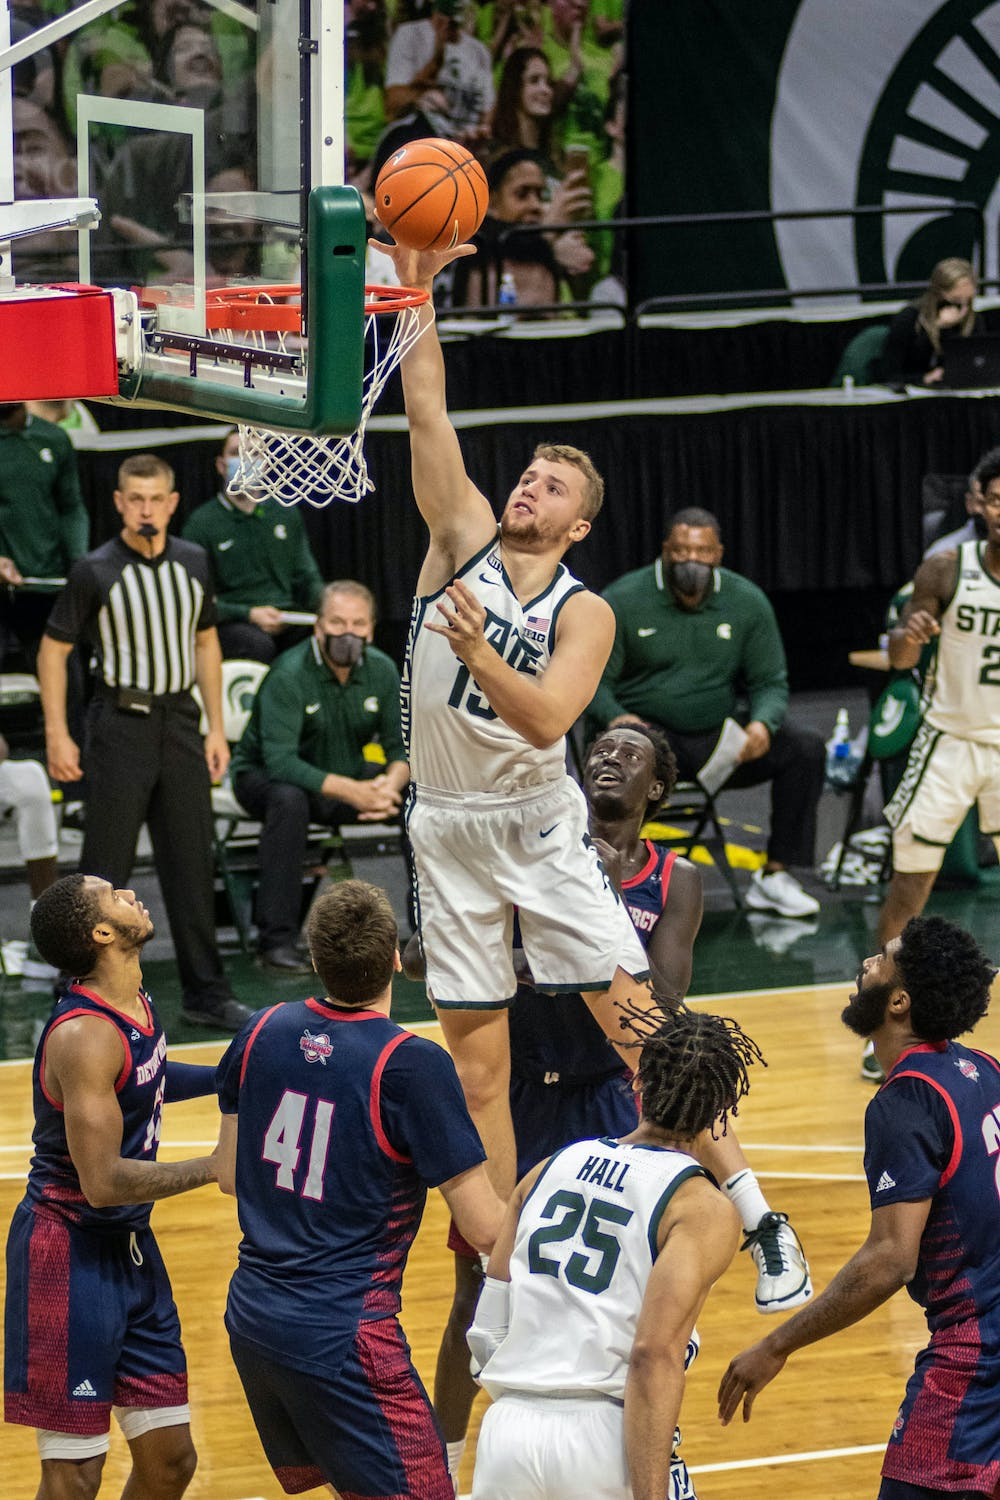 Junior forward Thomas Kithier (15) shoots the ball during the game against the Detroit Titans on Dec. 4, 2020 at the Breslin Center. The Spartans defeated the Titans, 83-76.